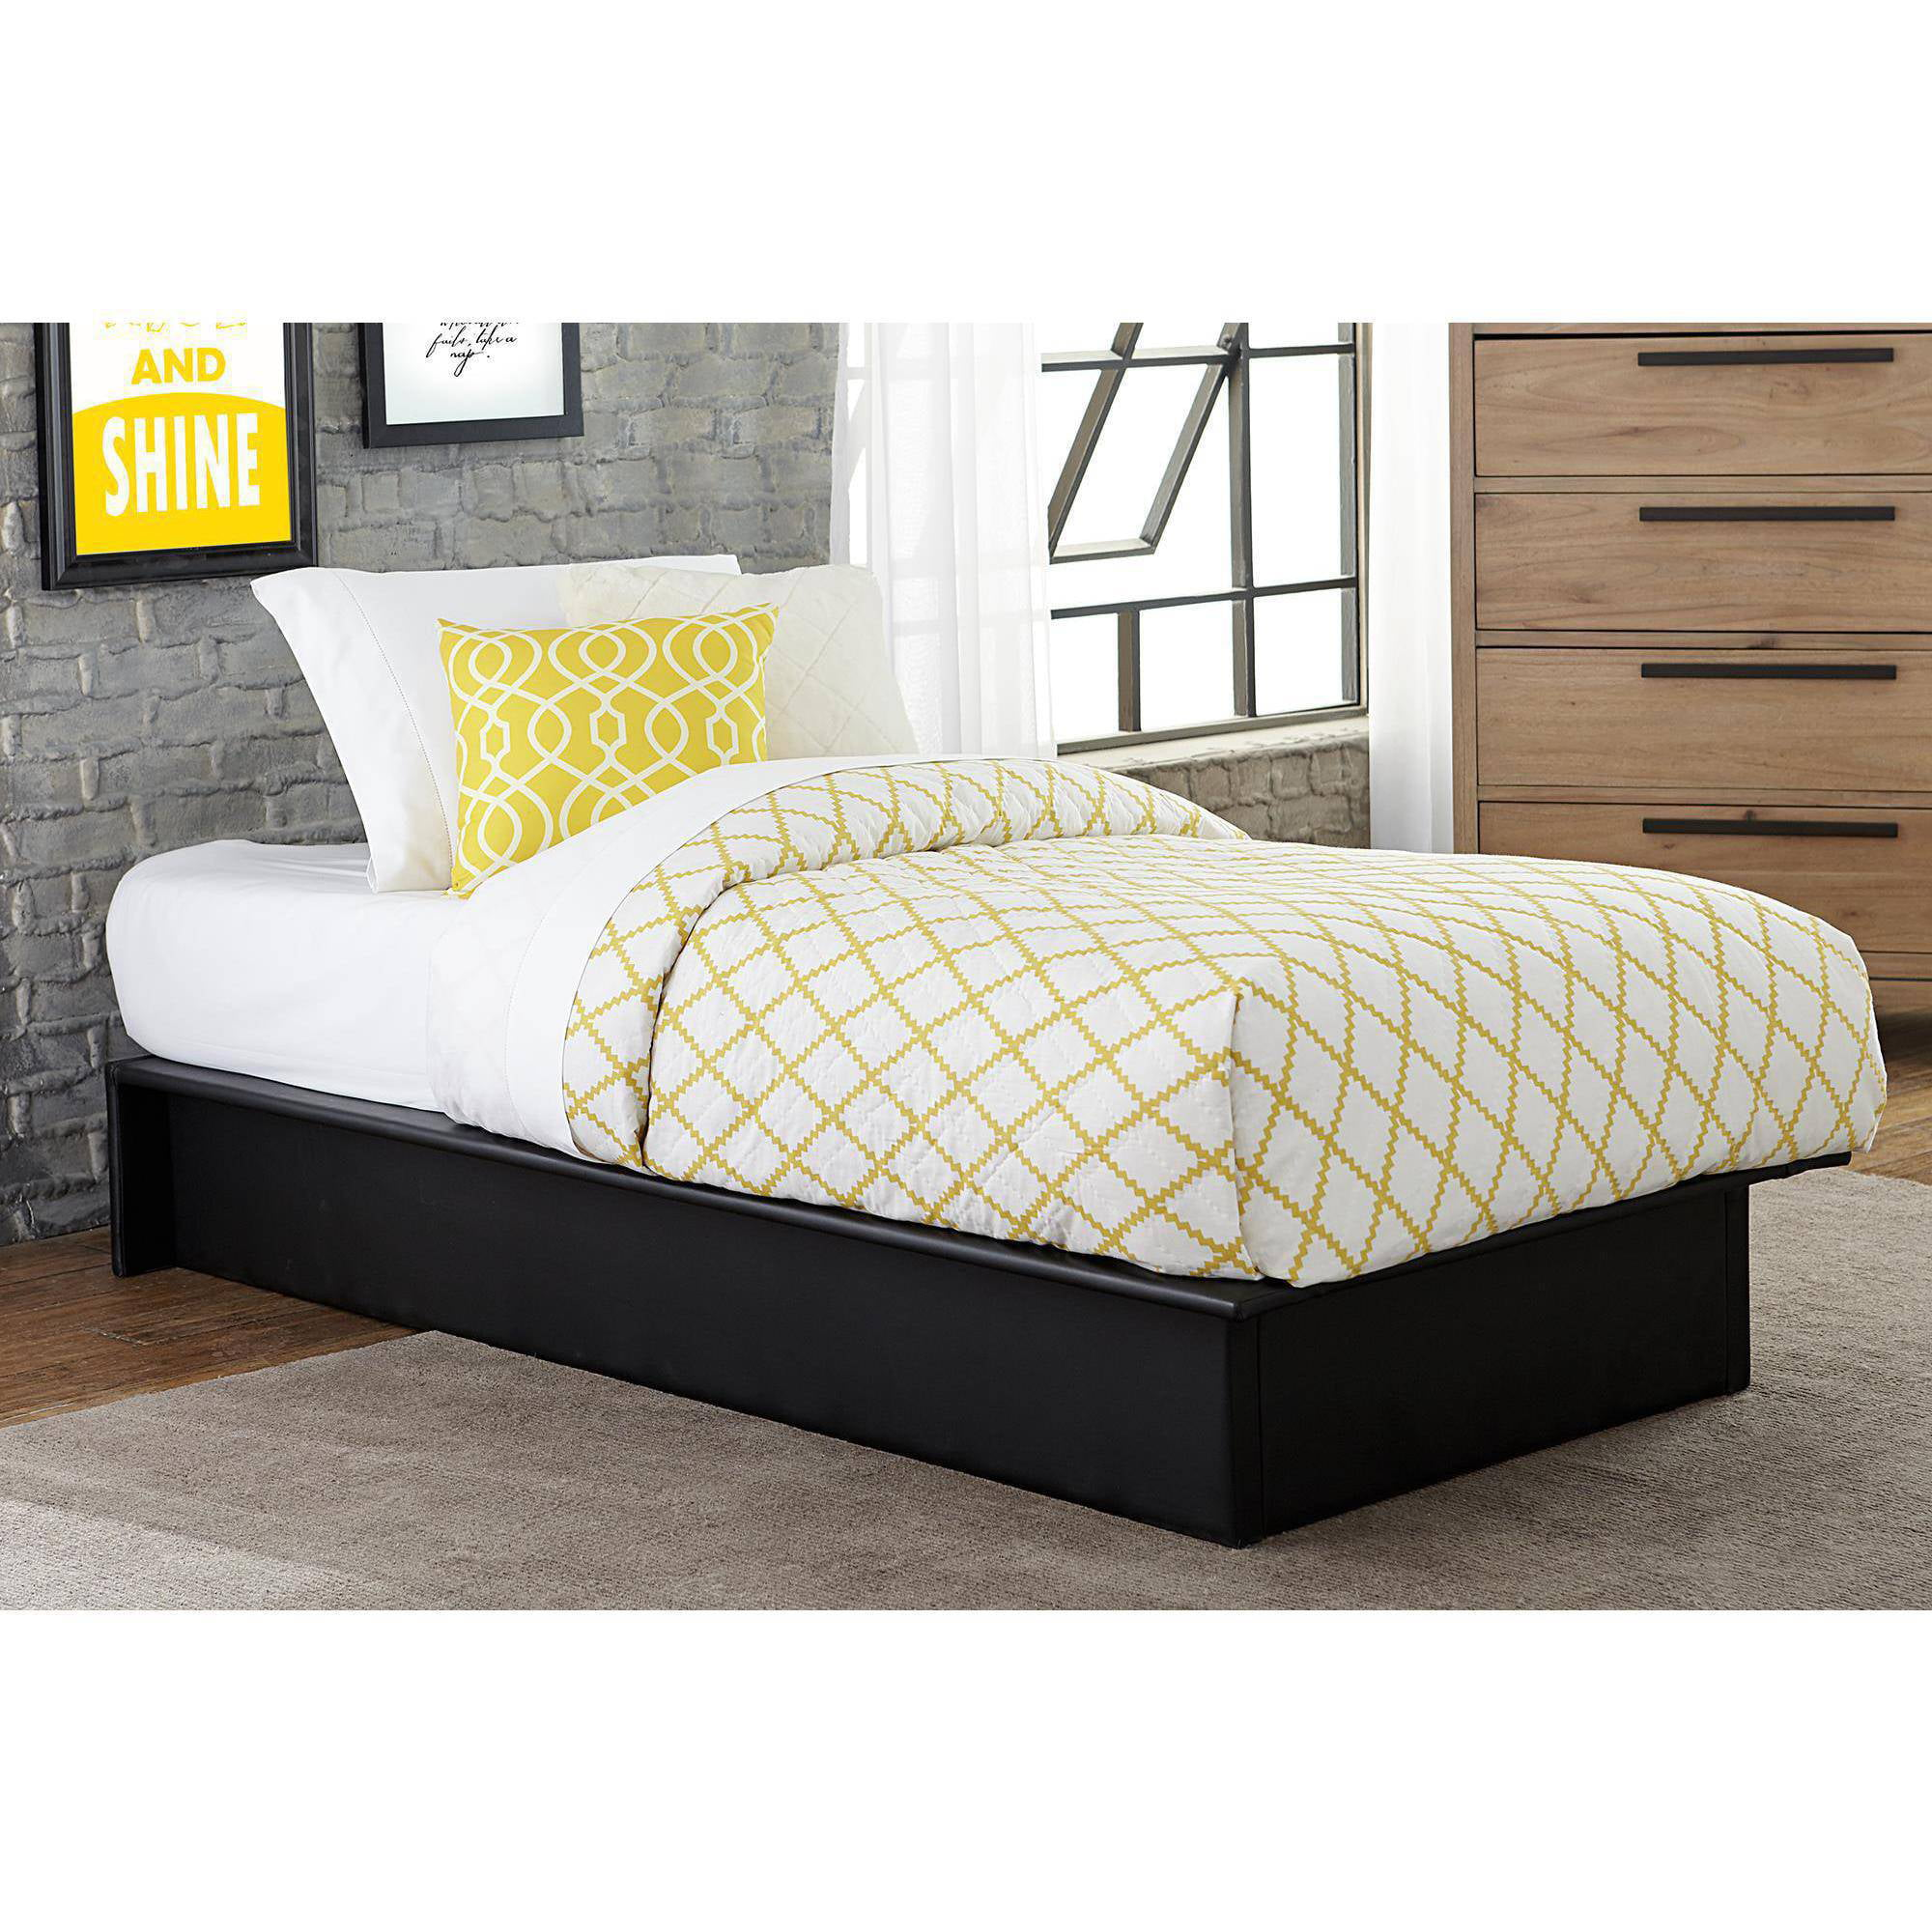 maven upholstered faux leather platform bed black multiple sizes  - maven upholstered faux leather platform bed black multiple sizes walmartcom